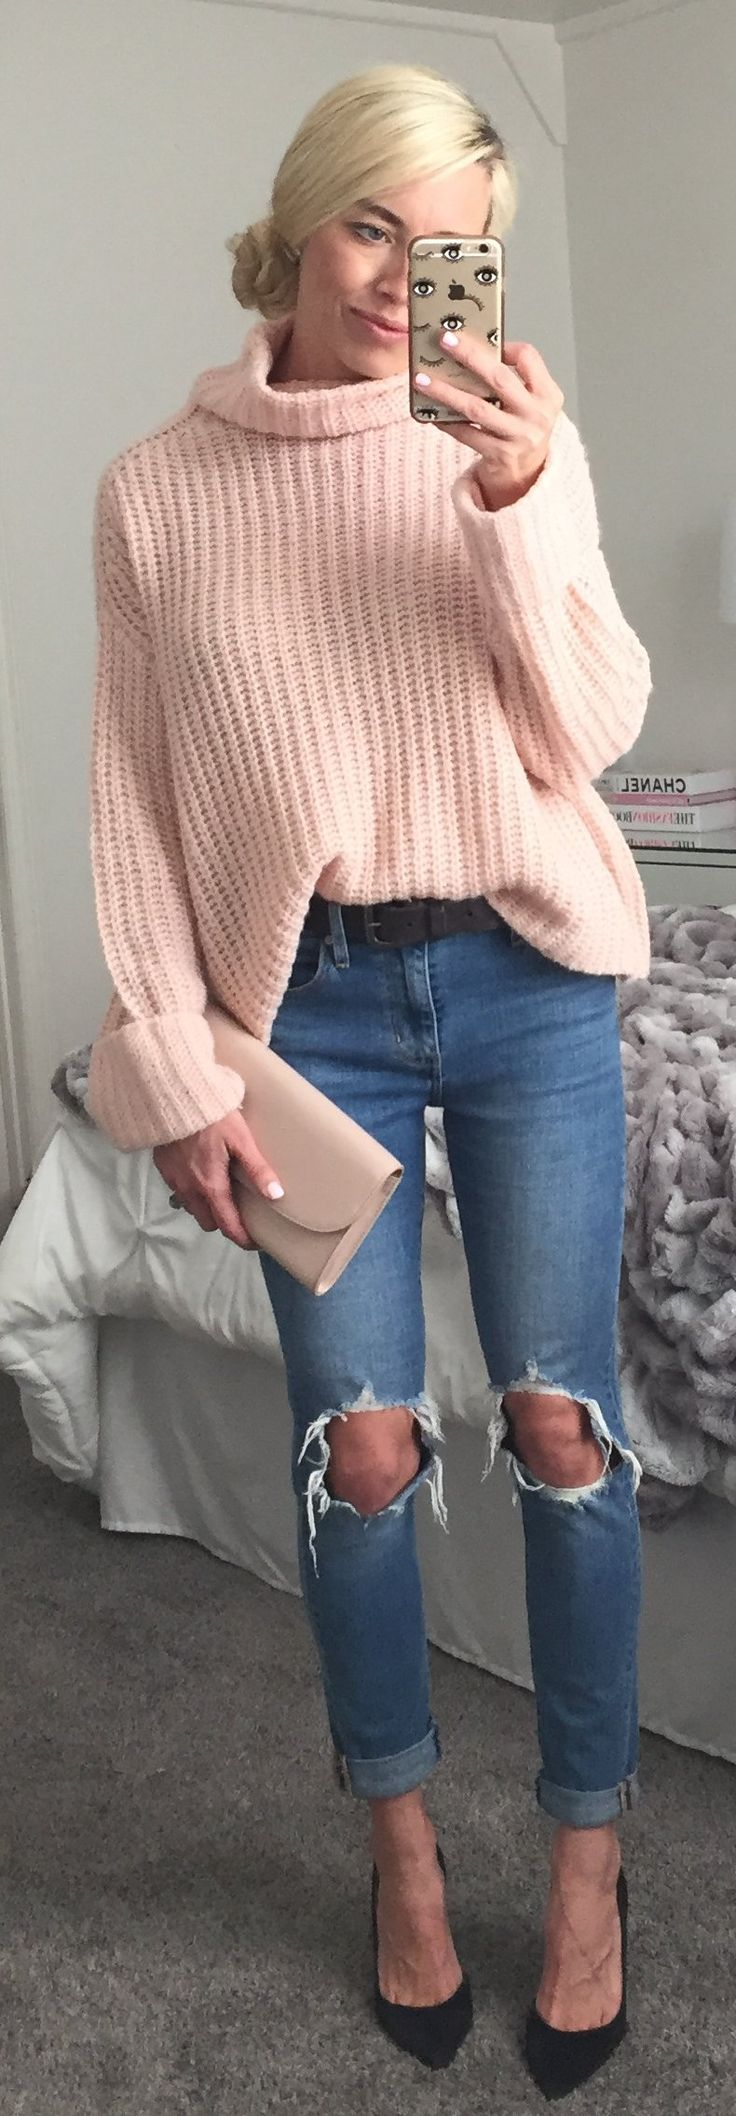 #winter #fashion /  Pink Turtleneck Knit / Destroyed Skinny Jeans / Black Pumps / Cream Leather Clutch